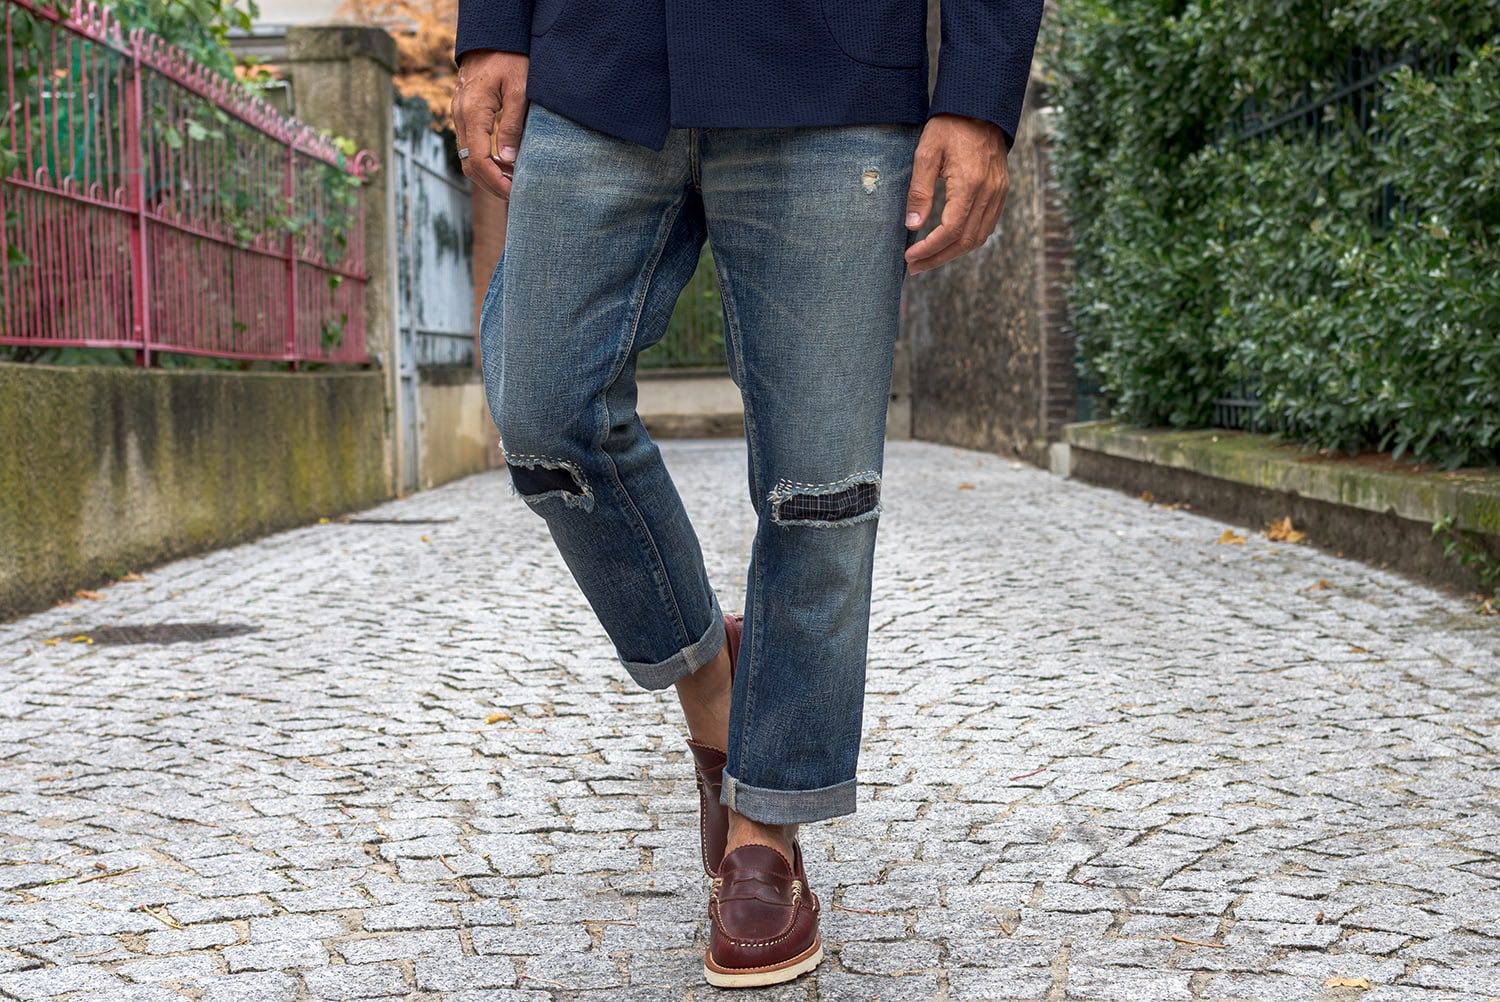 comment porter un jean coupe tapered - patchwork denim et yuketen penny loafers